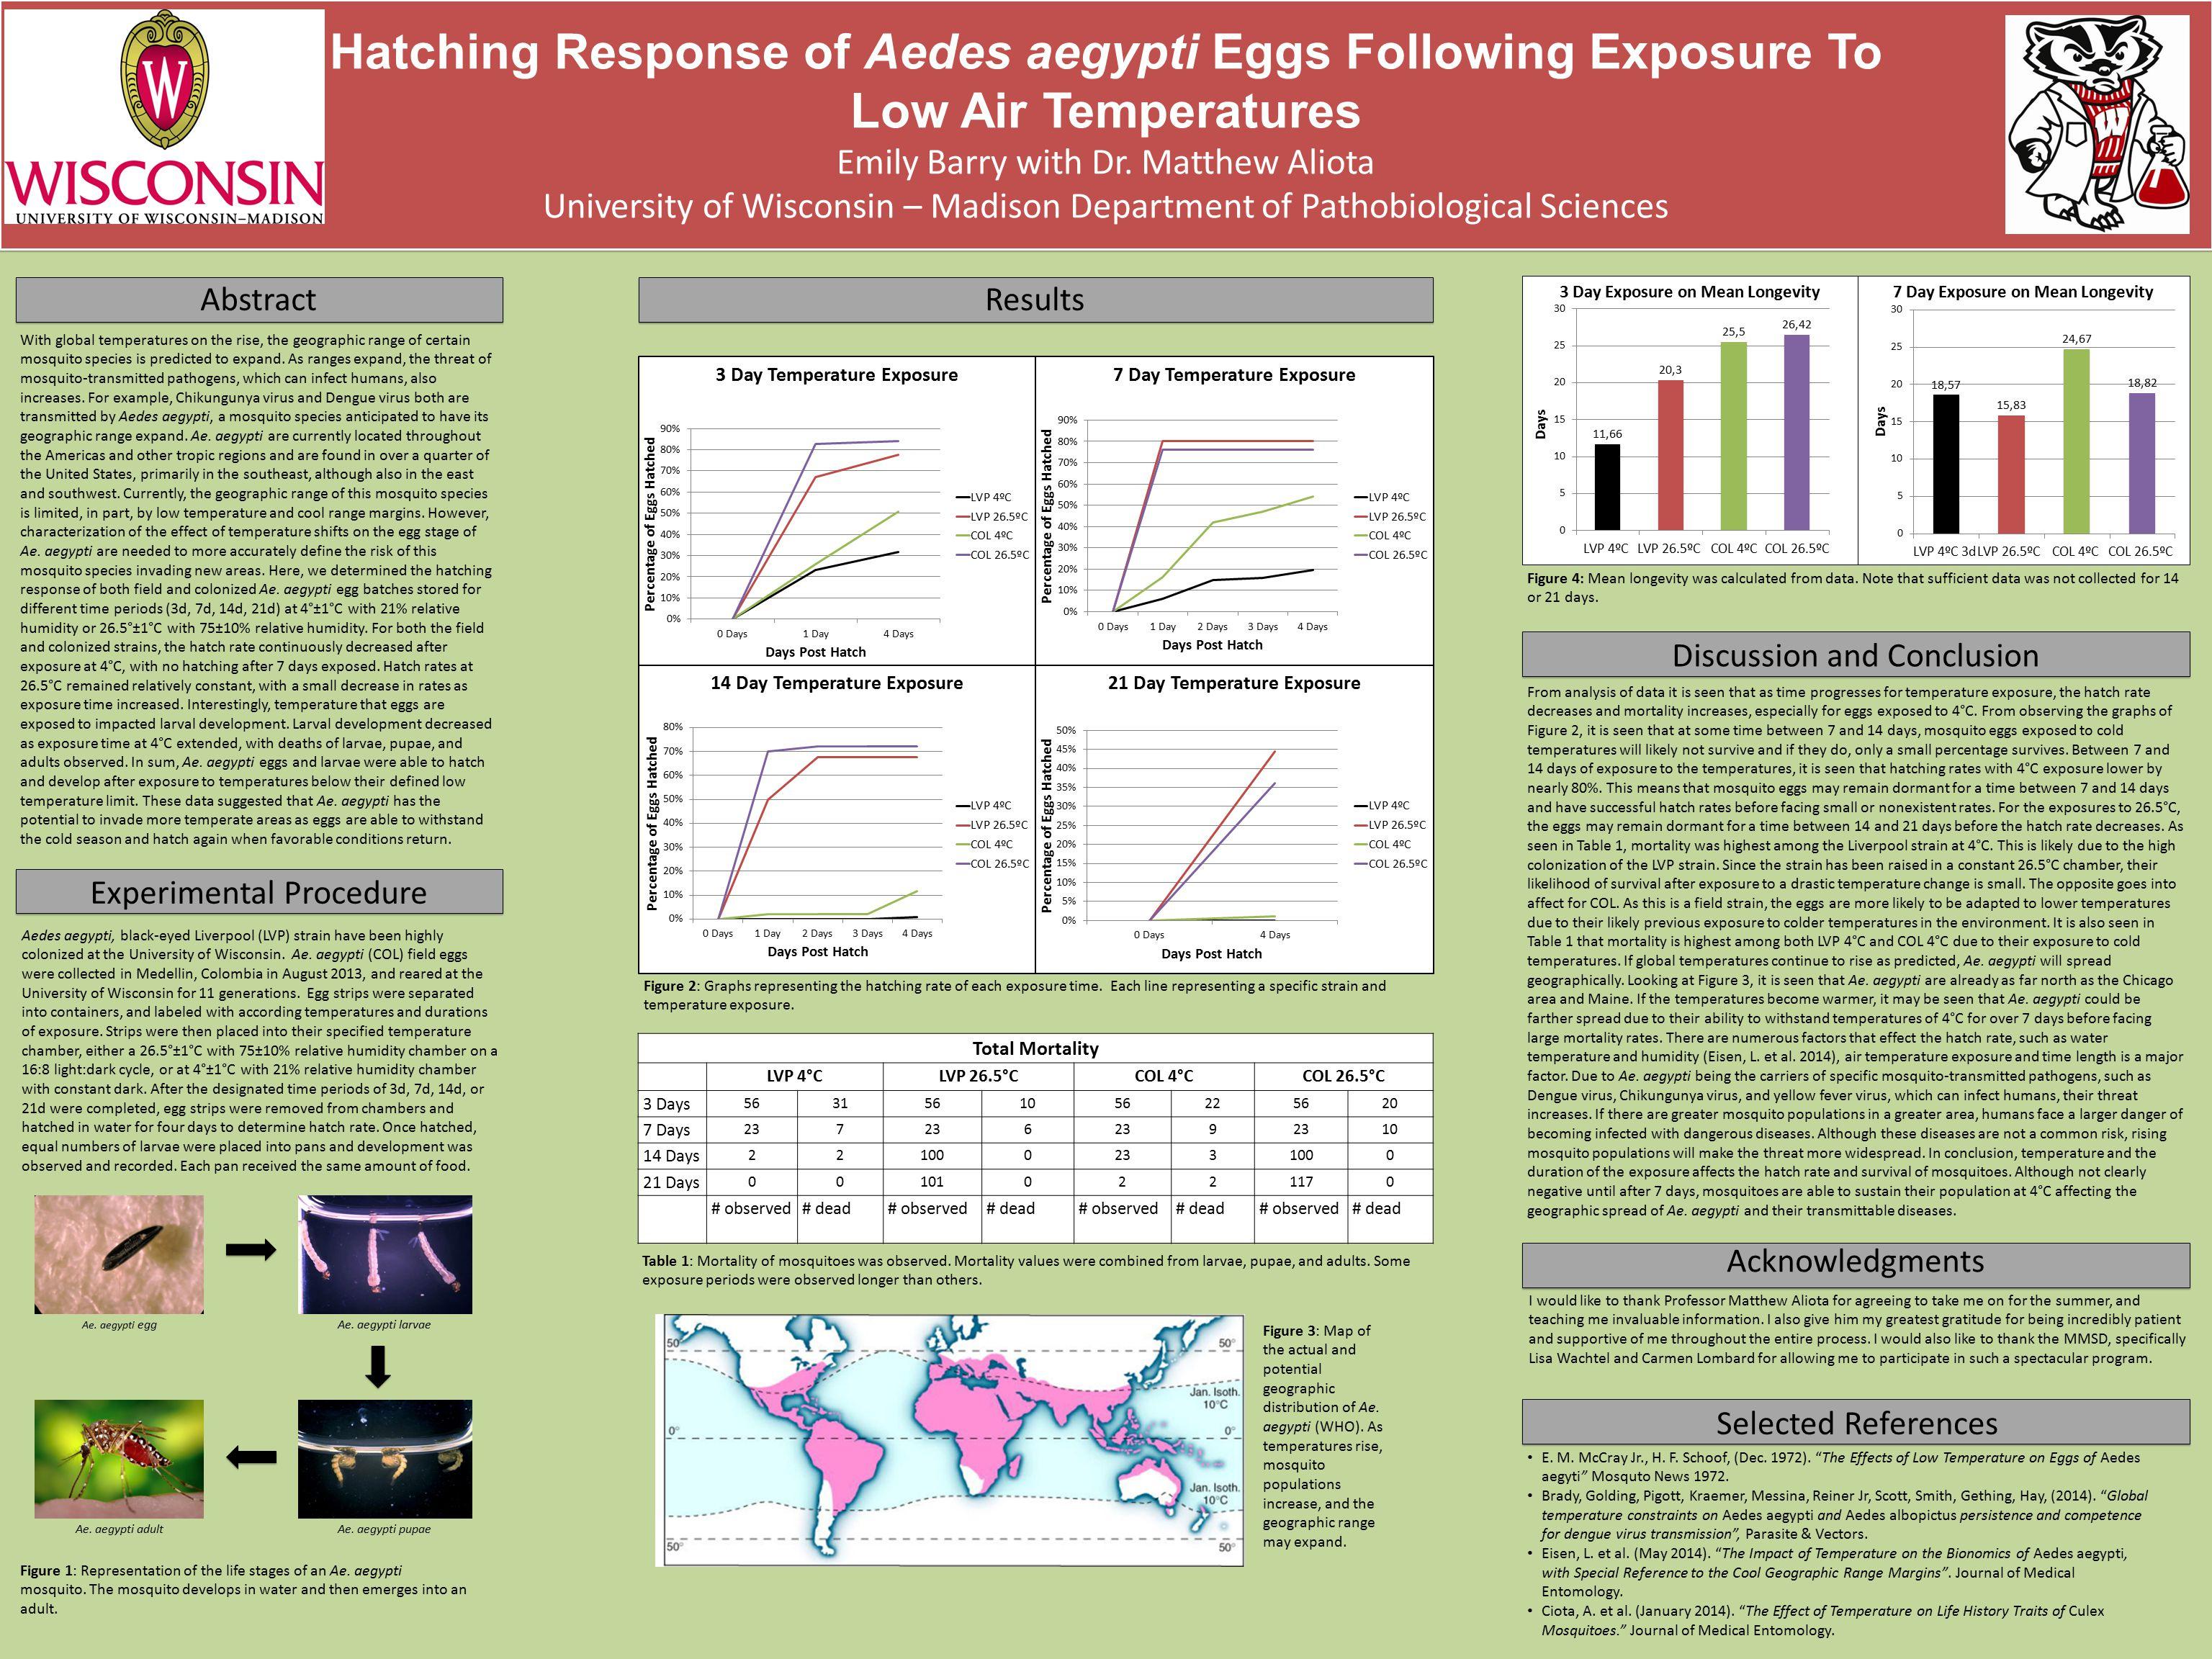 Hatching Response of Aedes aegypti Eggs Following Exposure To Low Air Temperatures Emily Barry with Dr. Matthew Aliota University of Wisconsin – Madis